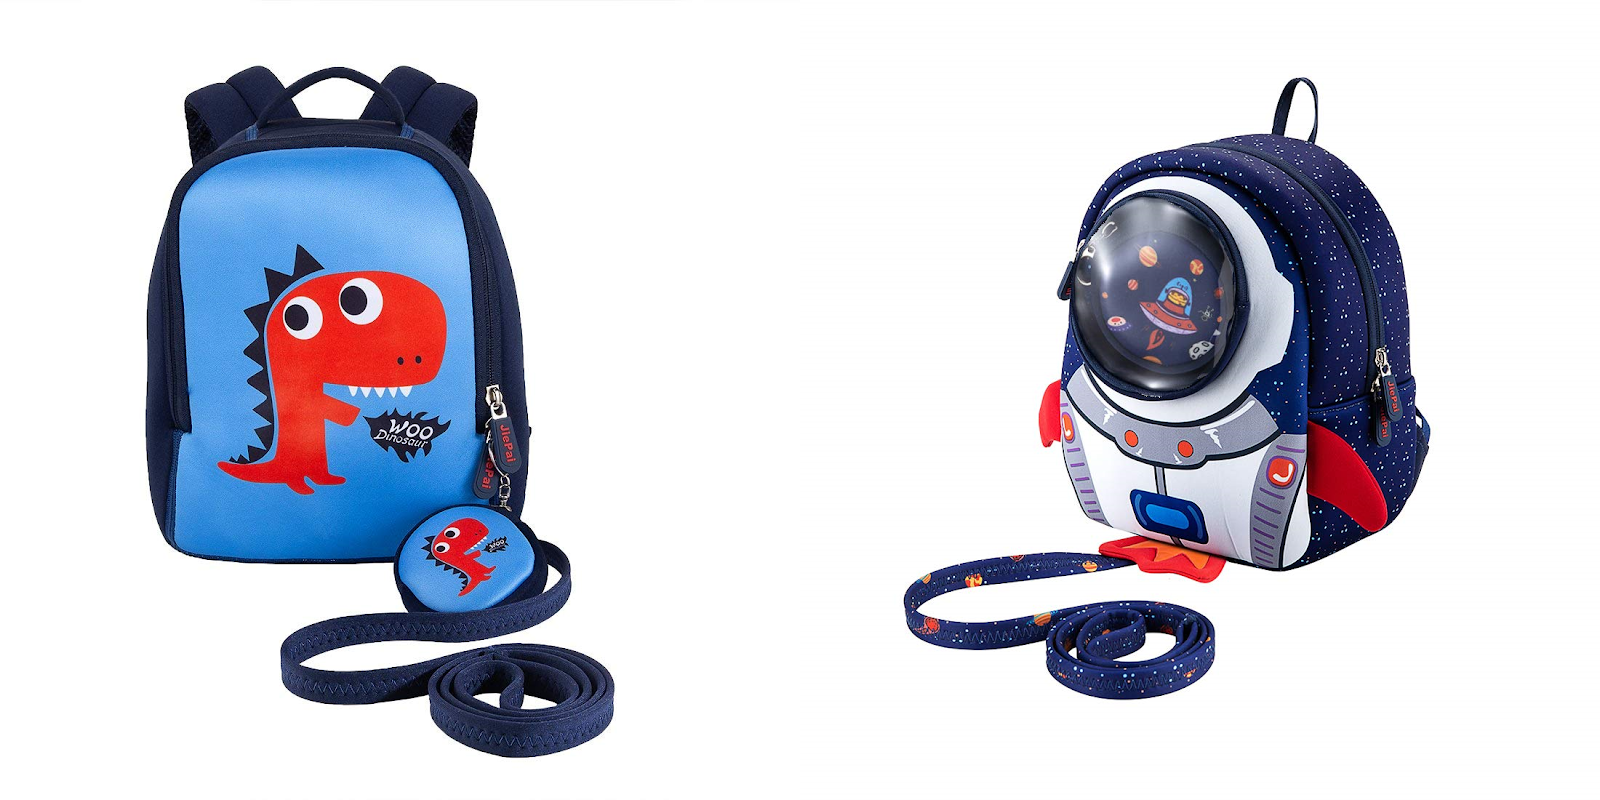 7.99 (Reg.  19.99) + Free Ship Toddler Kids Backpack with Safety ... 34a814a8244ad